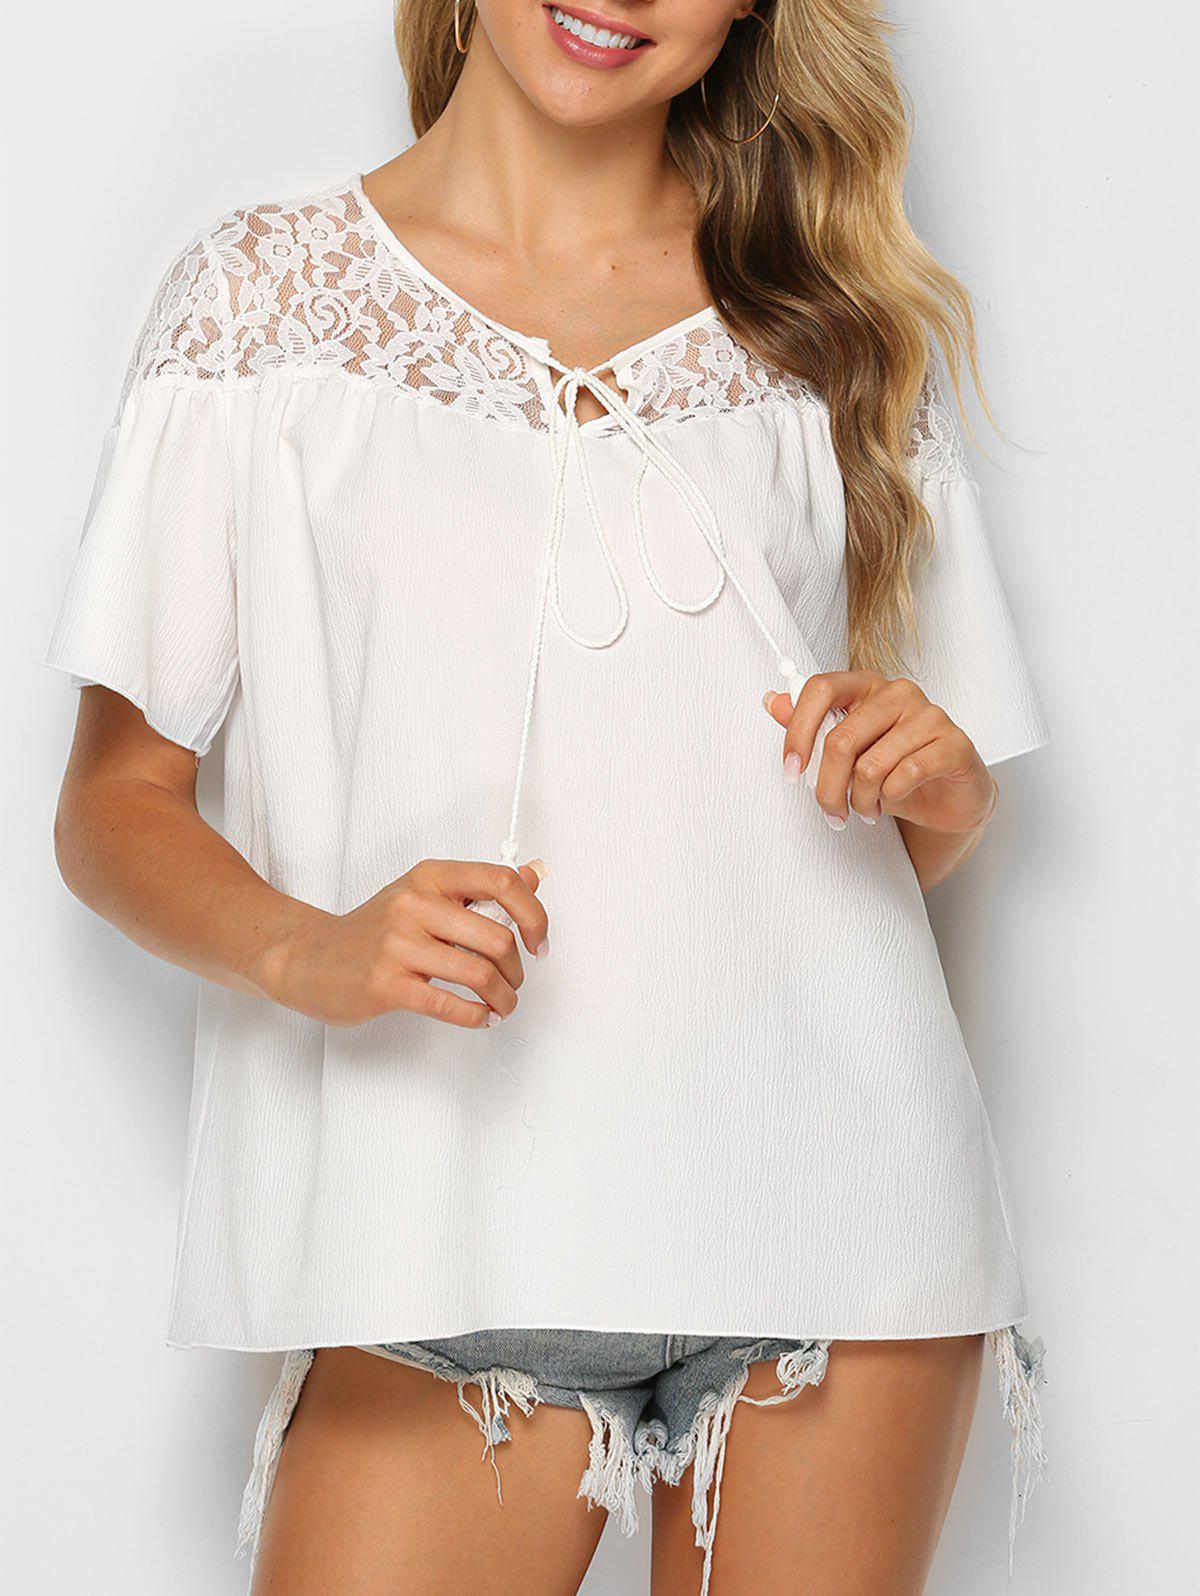 Flower Lace Insert Tasseled Knotted Blouse - WHITE L